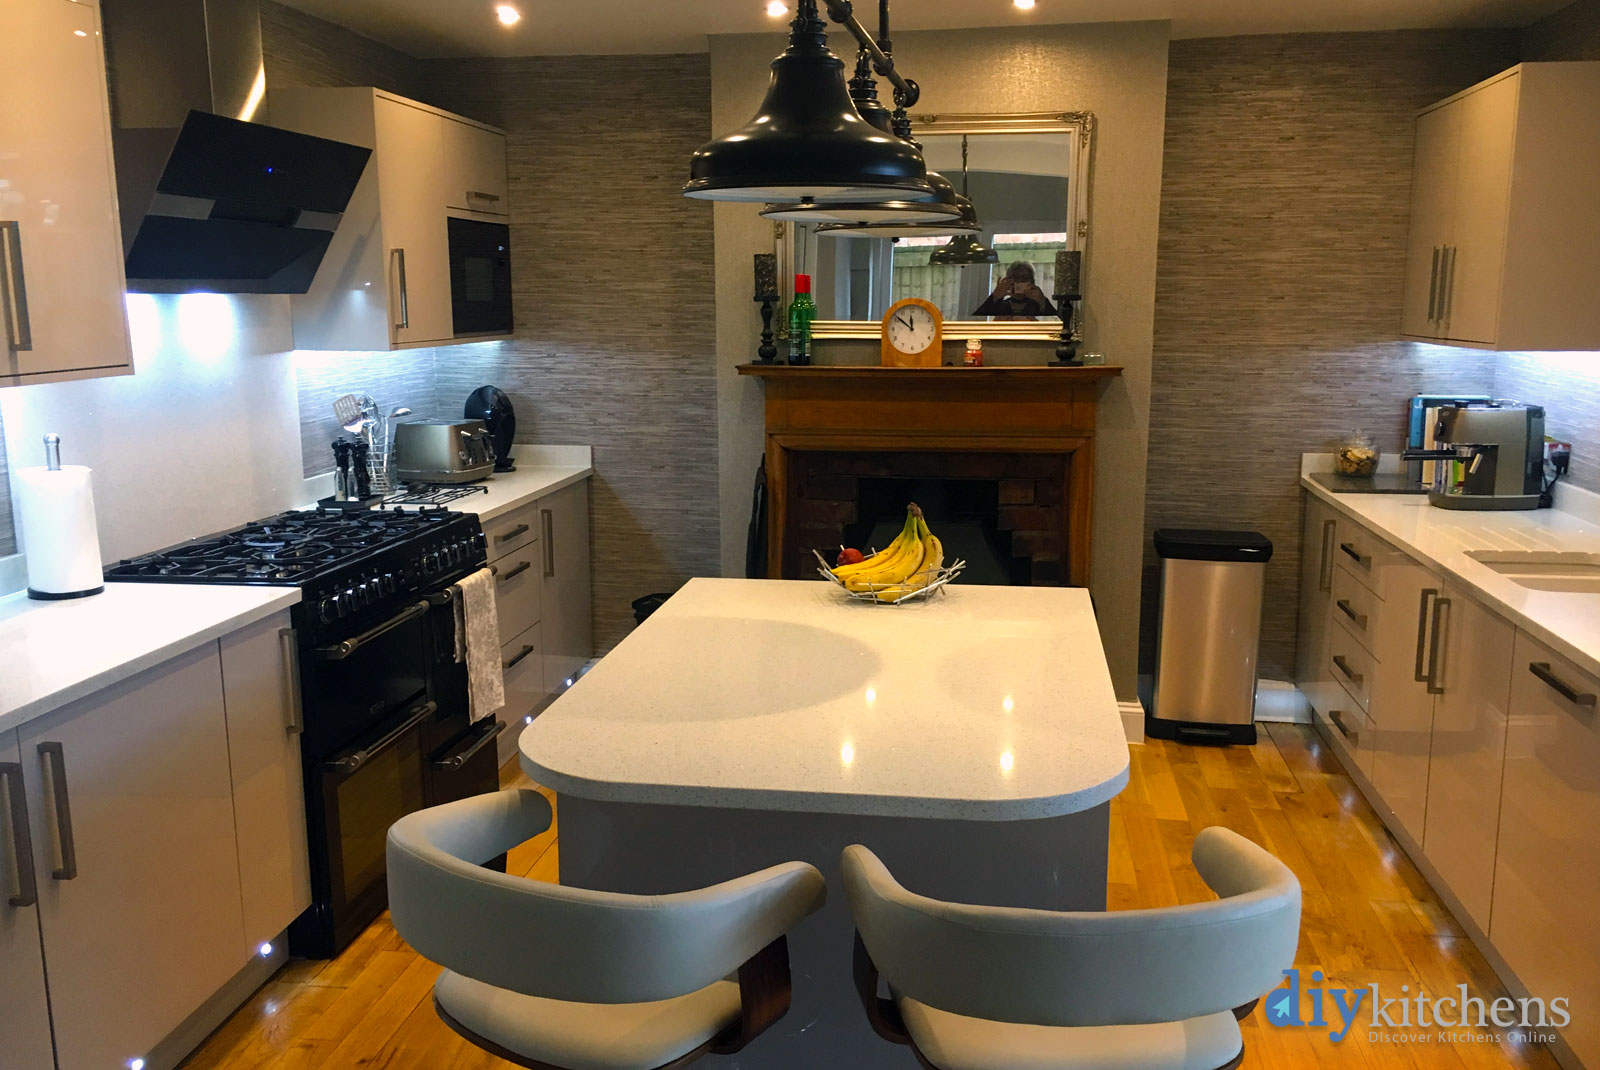 Carloine from coleshill pictures of my kitchen supplied for Diy kitchens com reviews